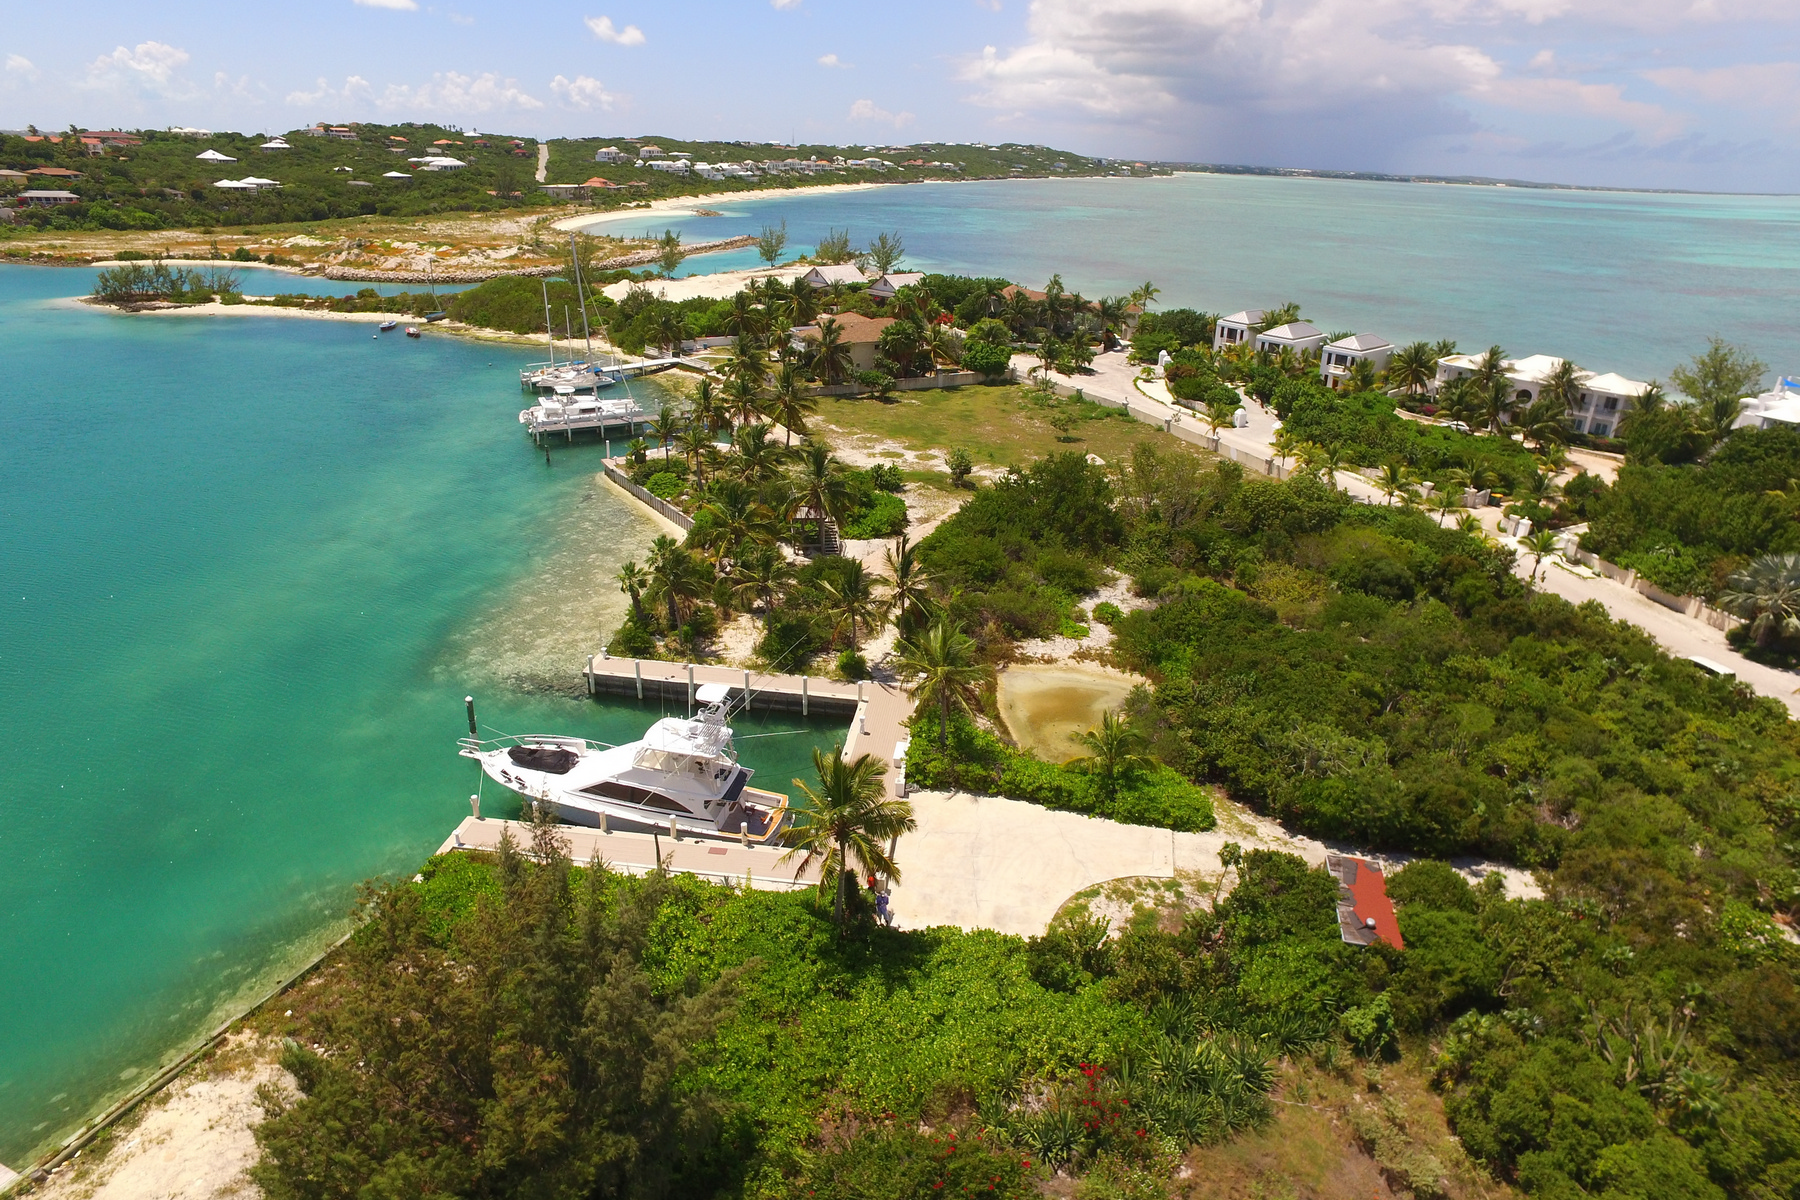 Land for Sale at Turtle Cove Marina Waterfront Turtle Cove, TCI Turks And Caicos Islands